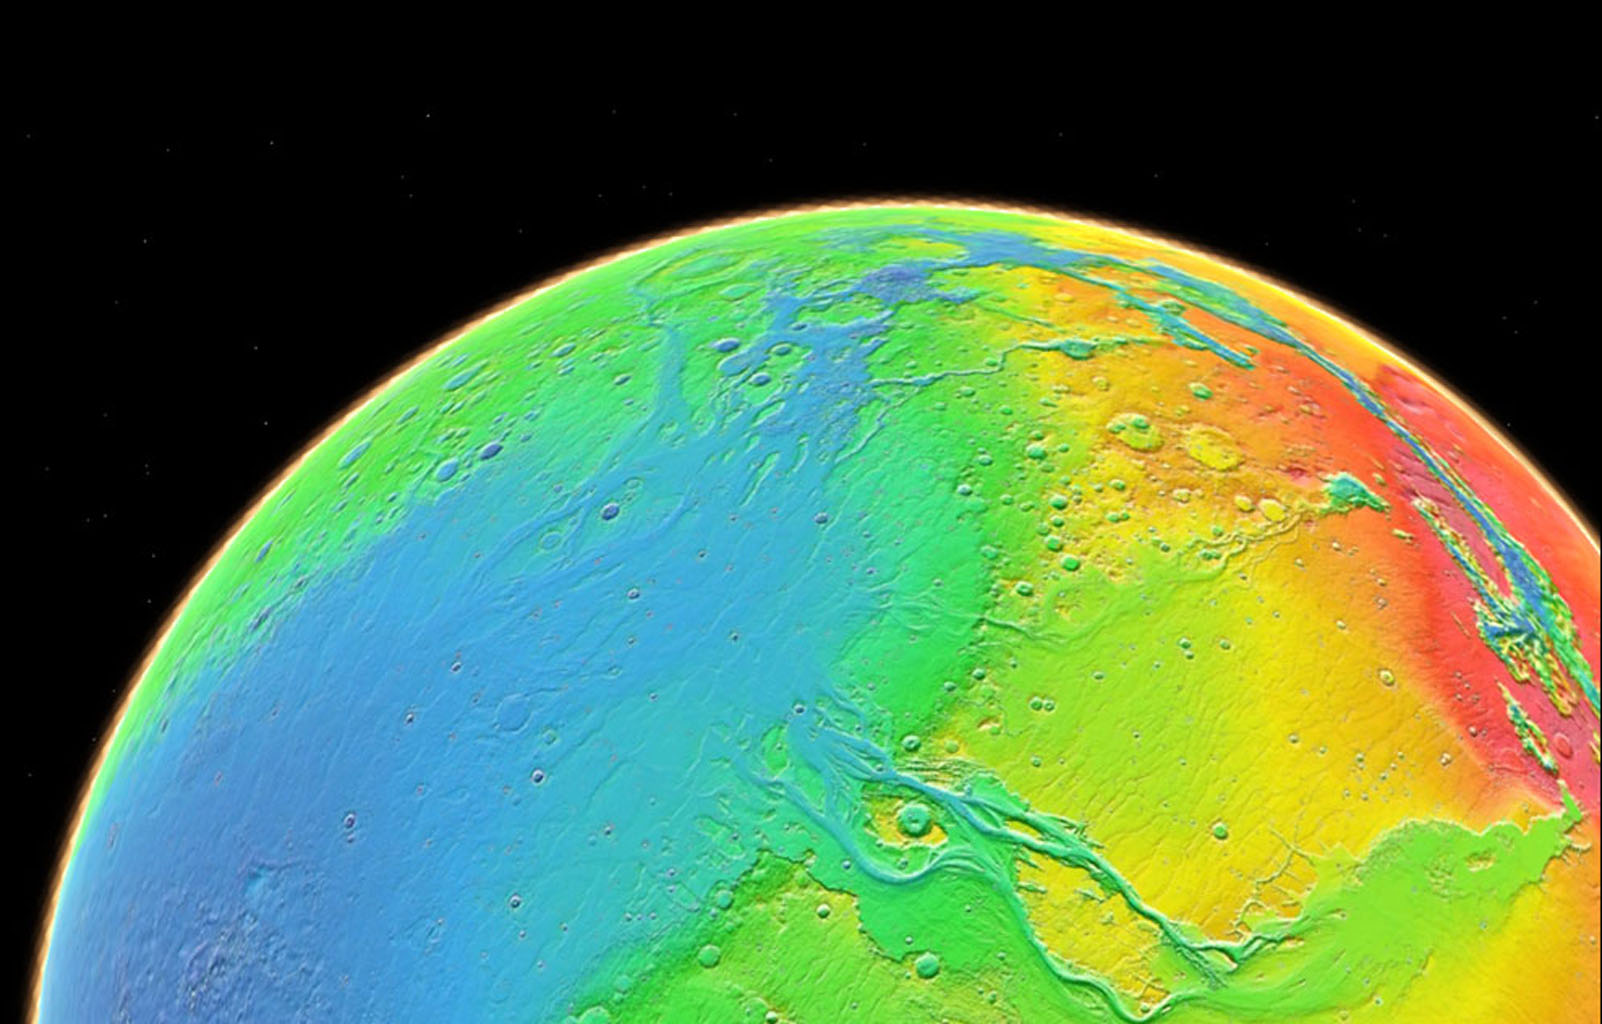 Color coding in this image of Mars represents differences in elevation, measured by NASA's Mars Global Surveyor. While surface liquid water is rare and ephermal on modern Mars.